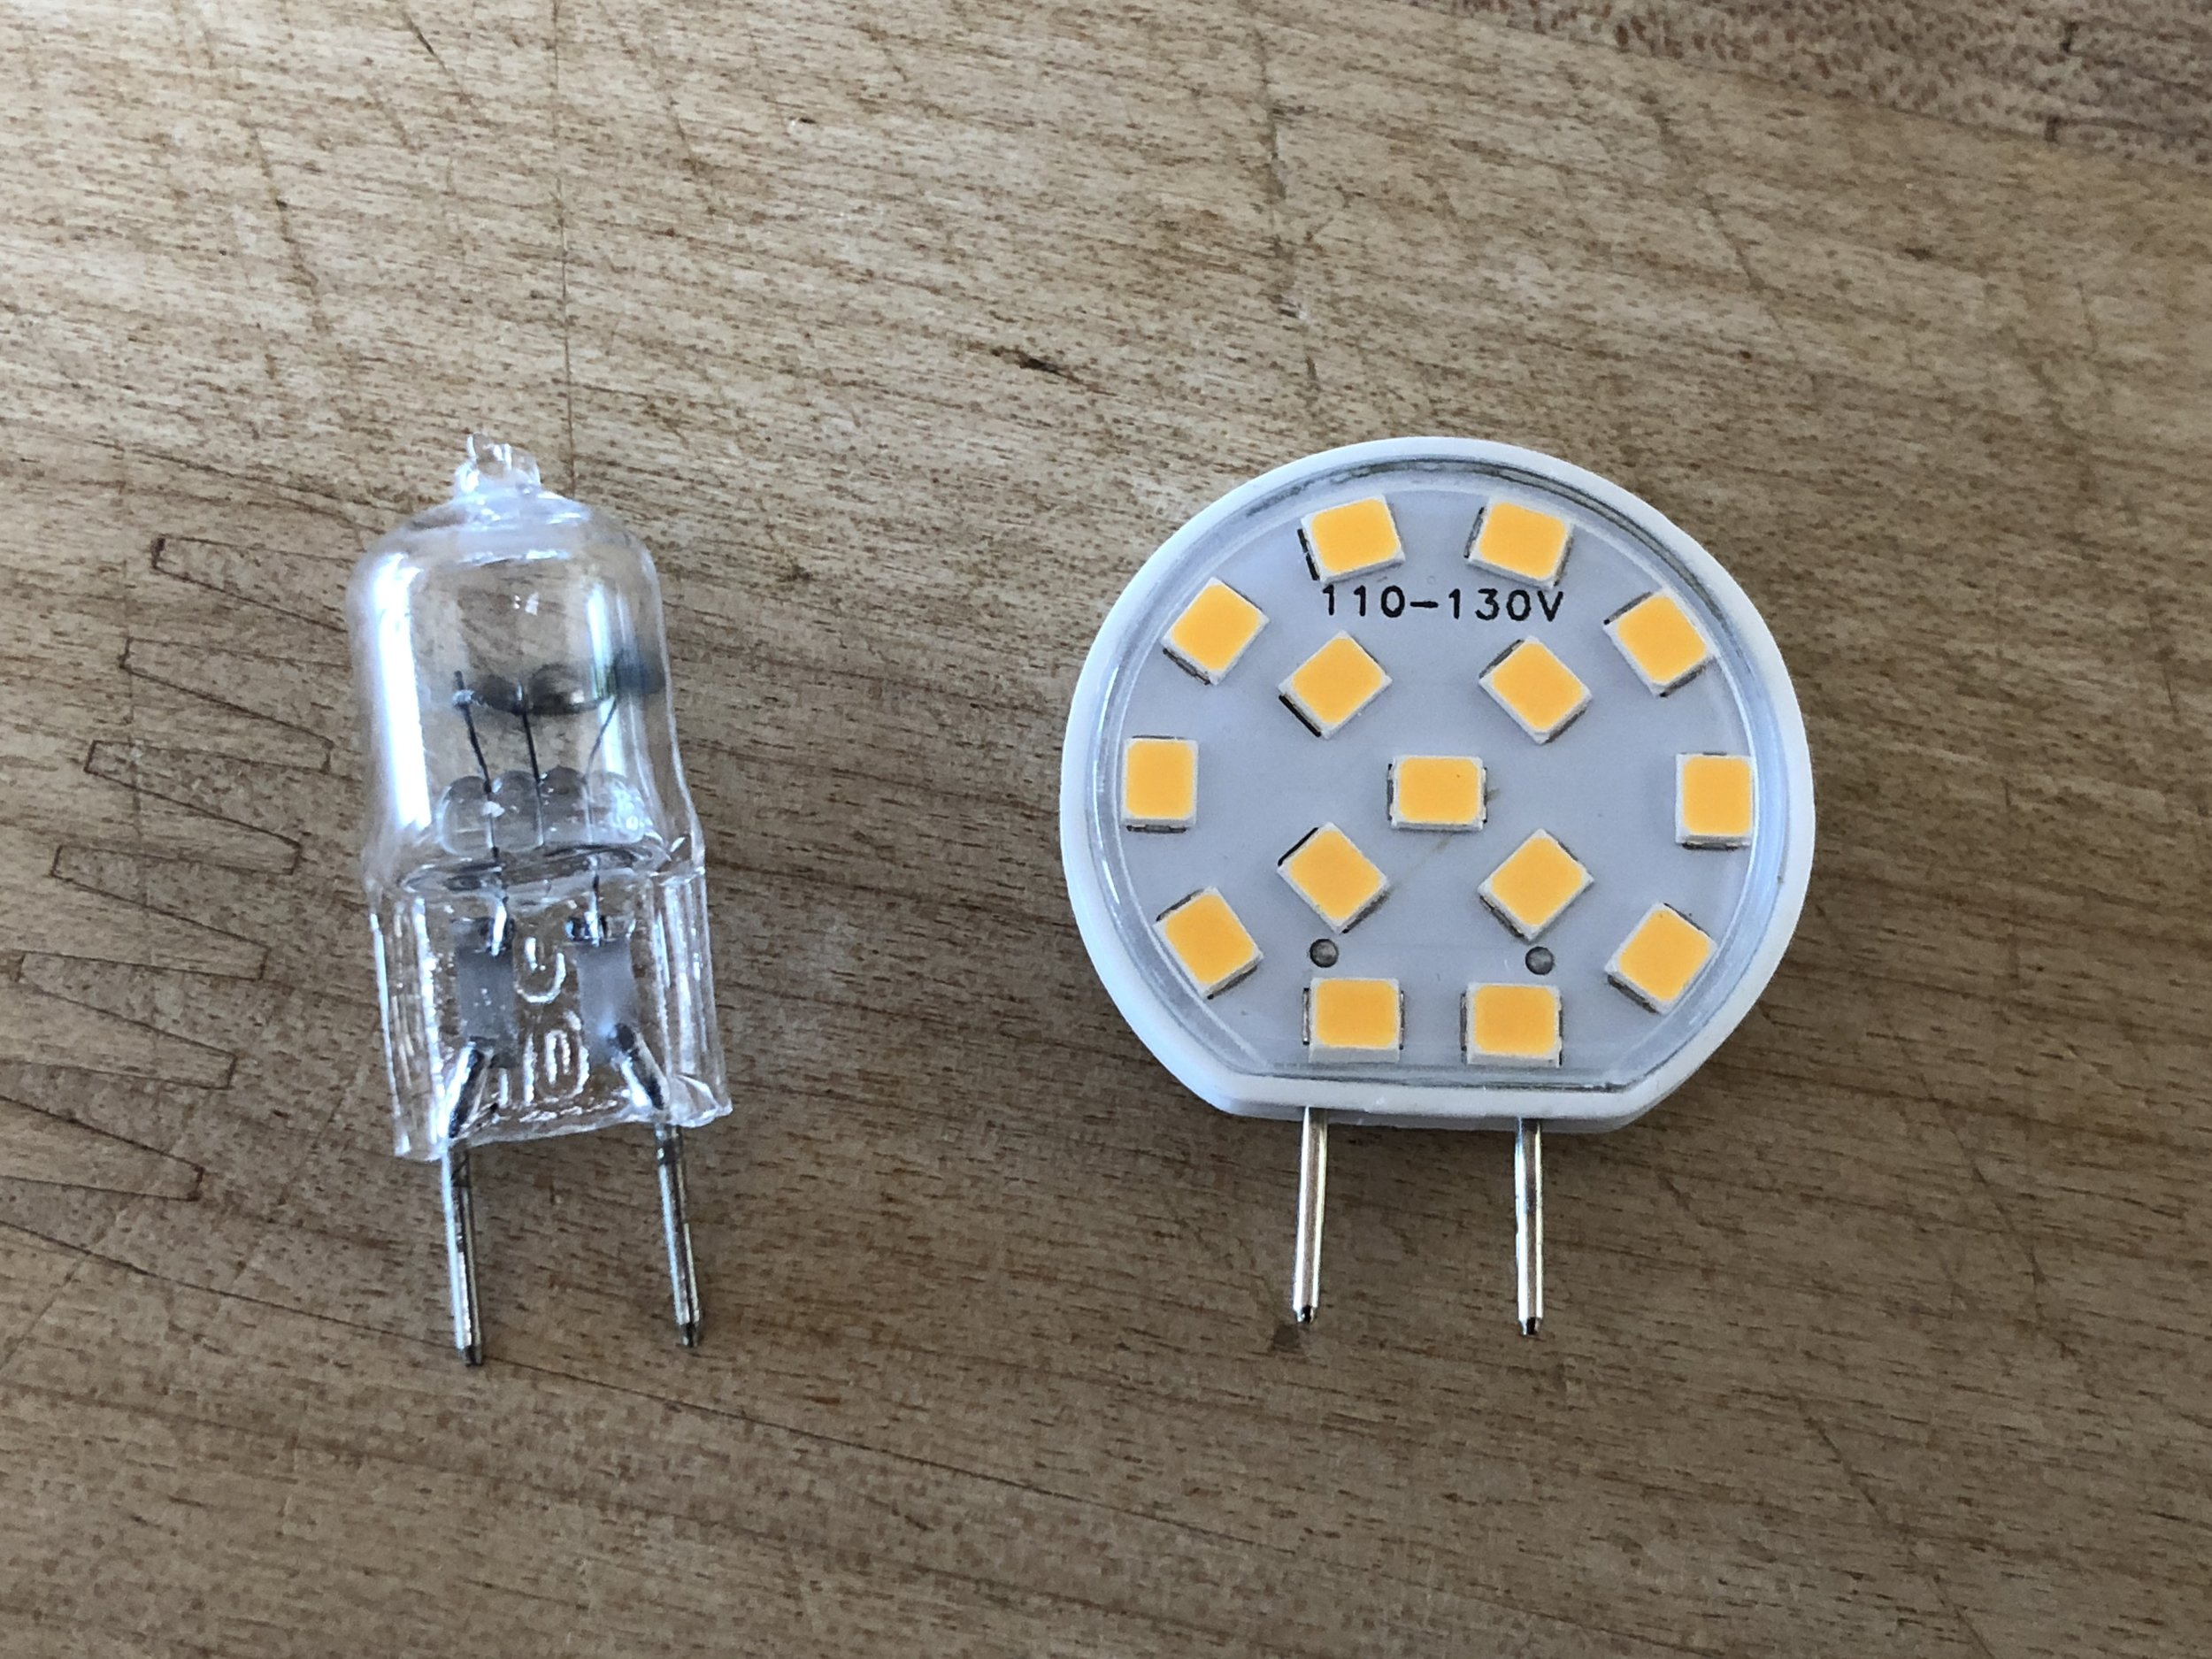 G8 bulbs: 20W halogen (left) and 2.5W LED (right)